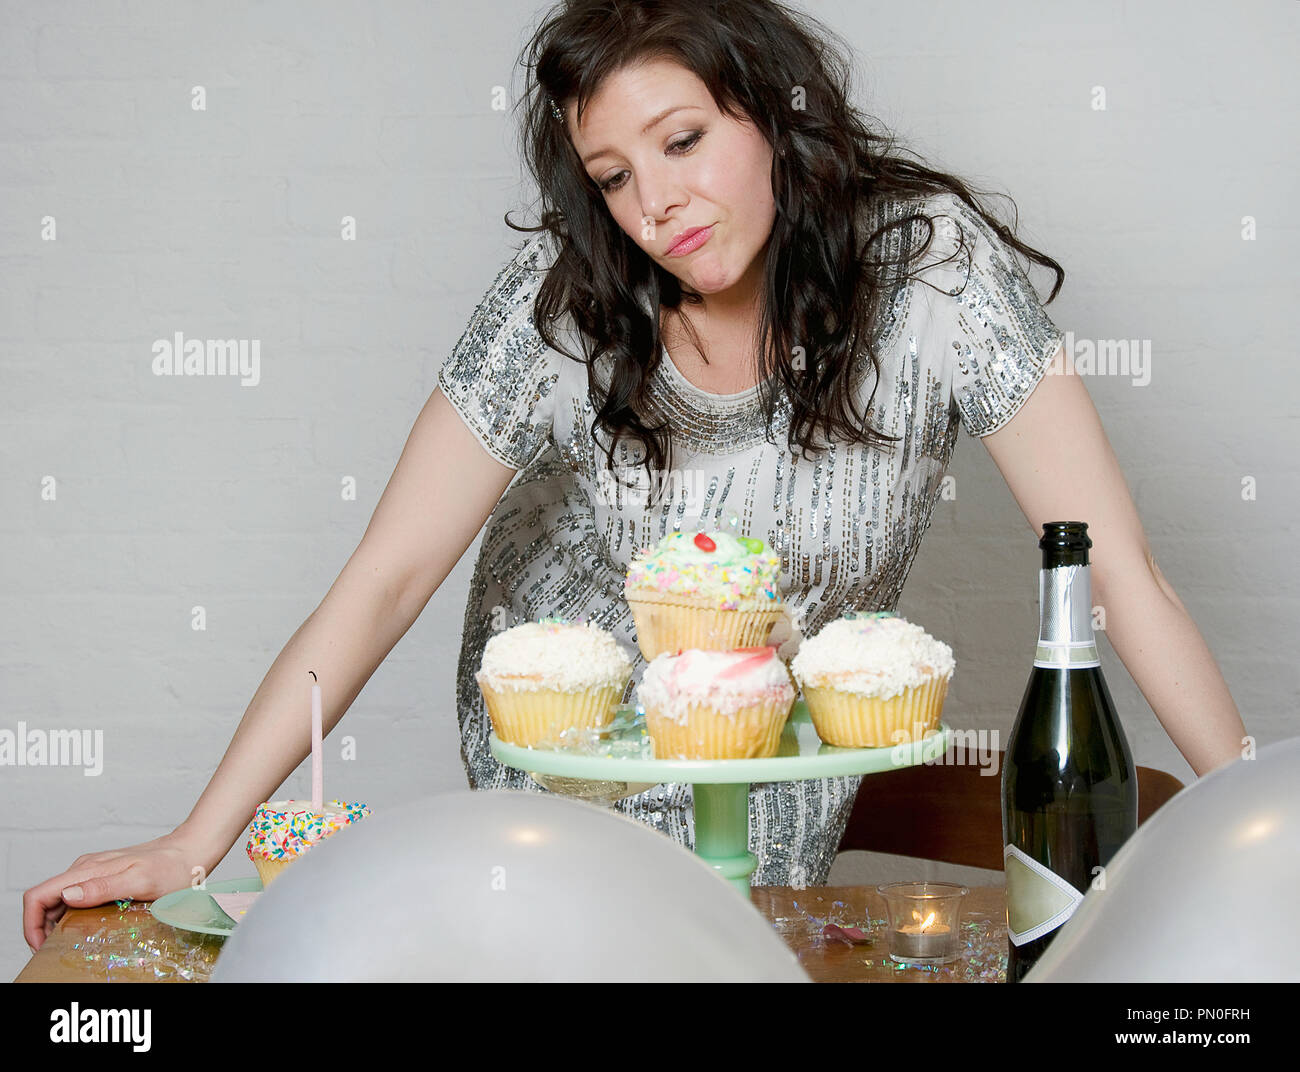 A woman at her birthday party. - Stock Image